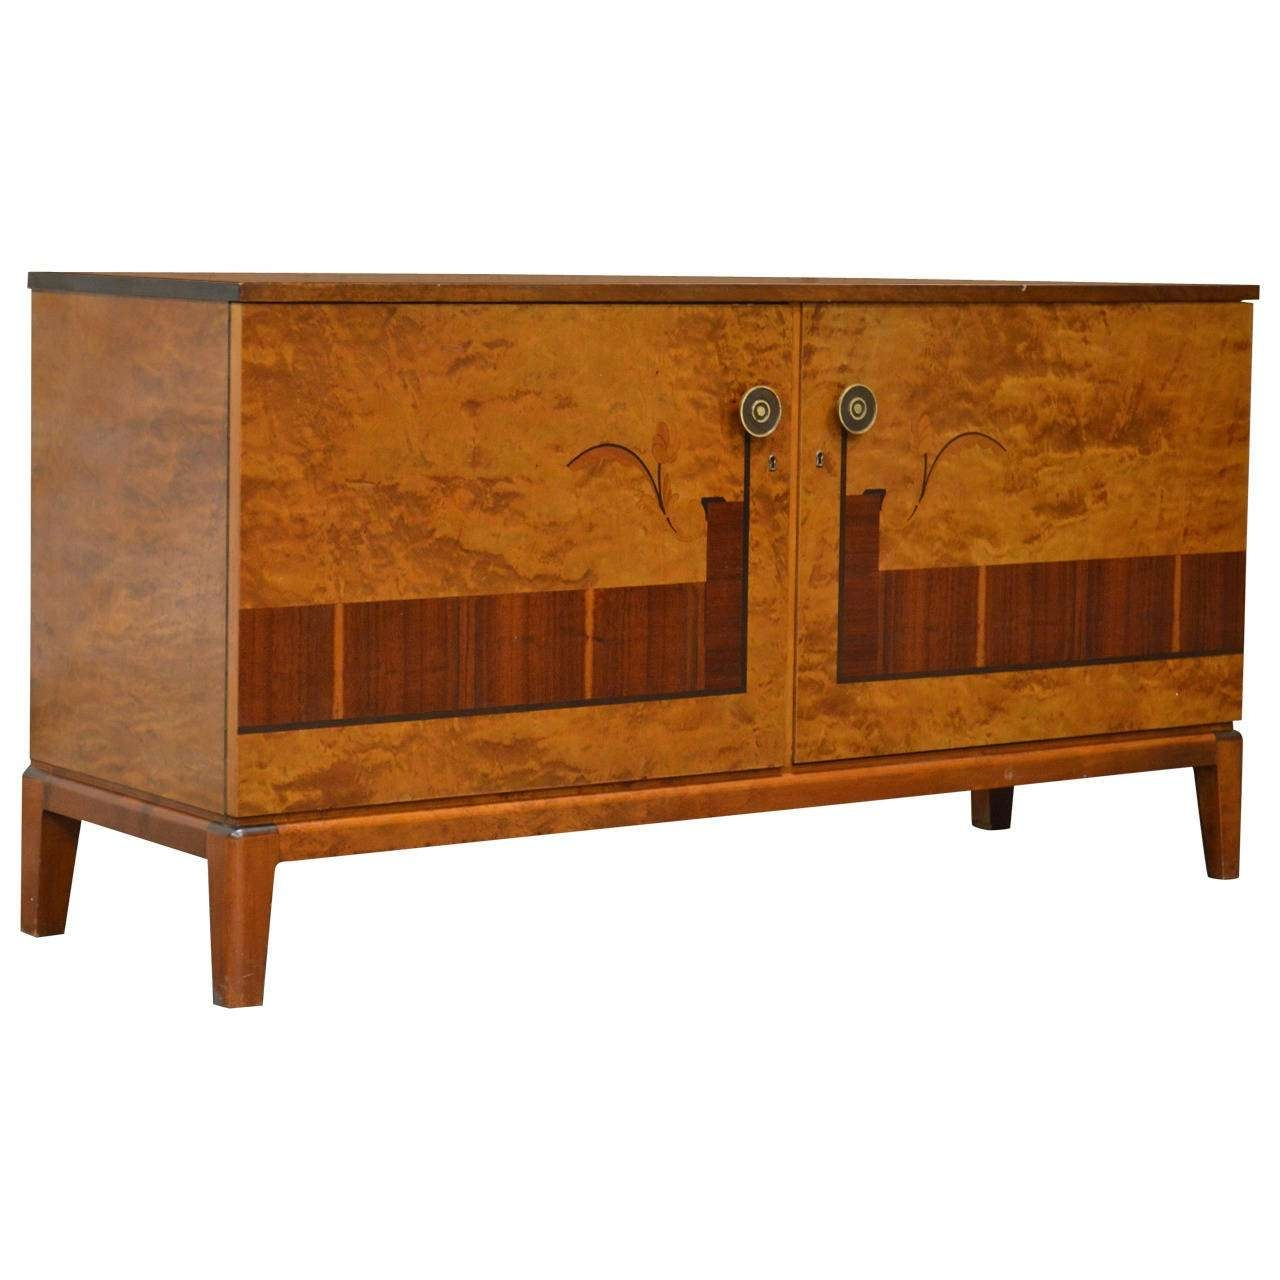 Moderne Sideboard view gallery of deco sideboards showing 19 of 20 photos